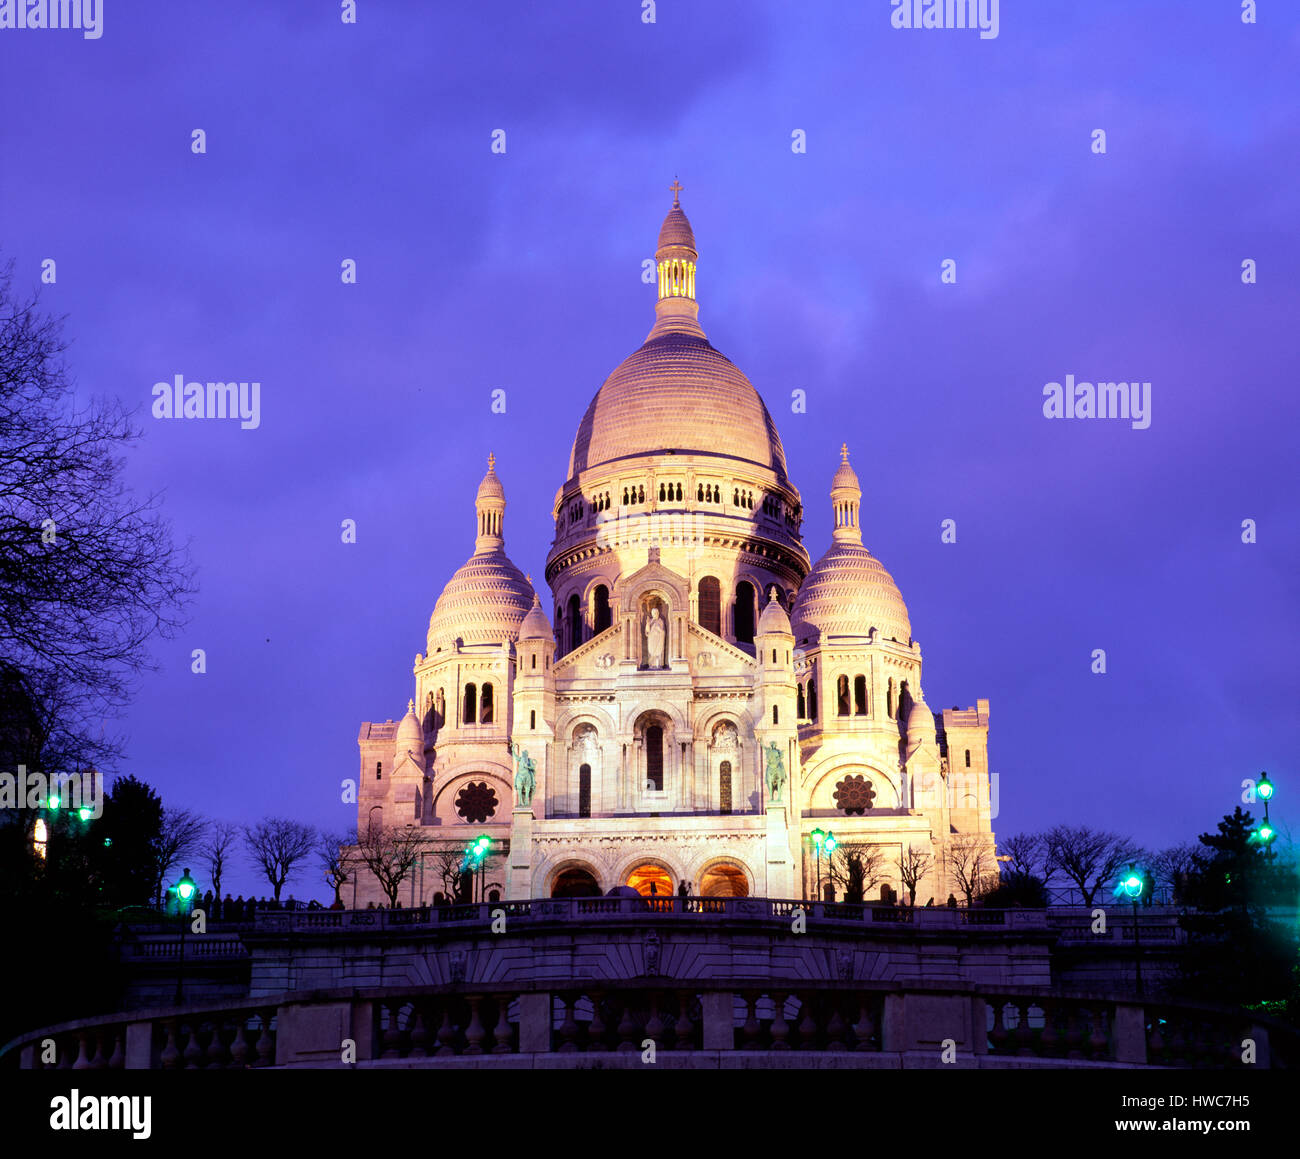 Sacre Coeur at dusk, Montmartre, Paris, France - Stock Image